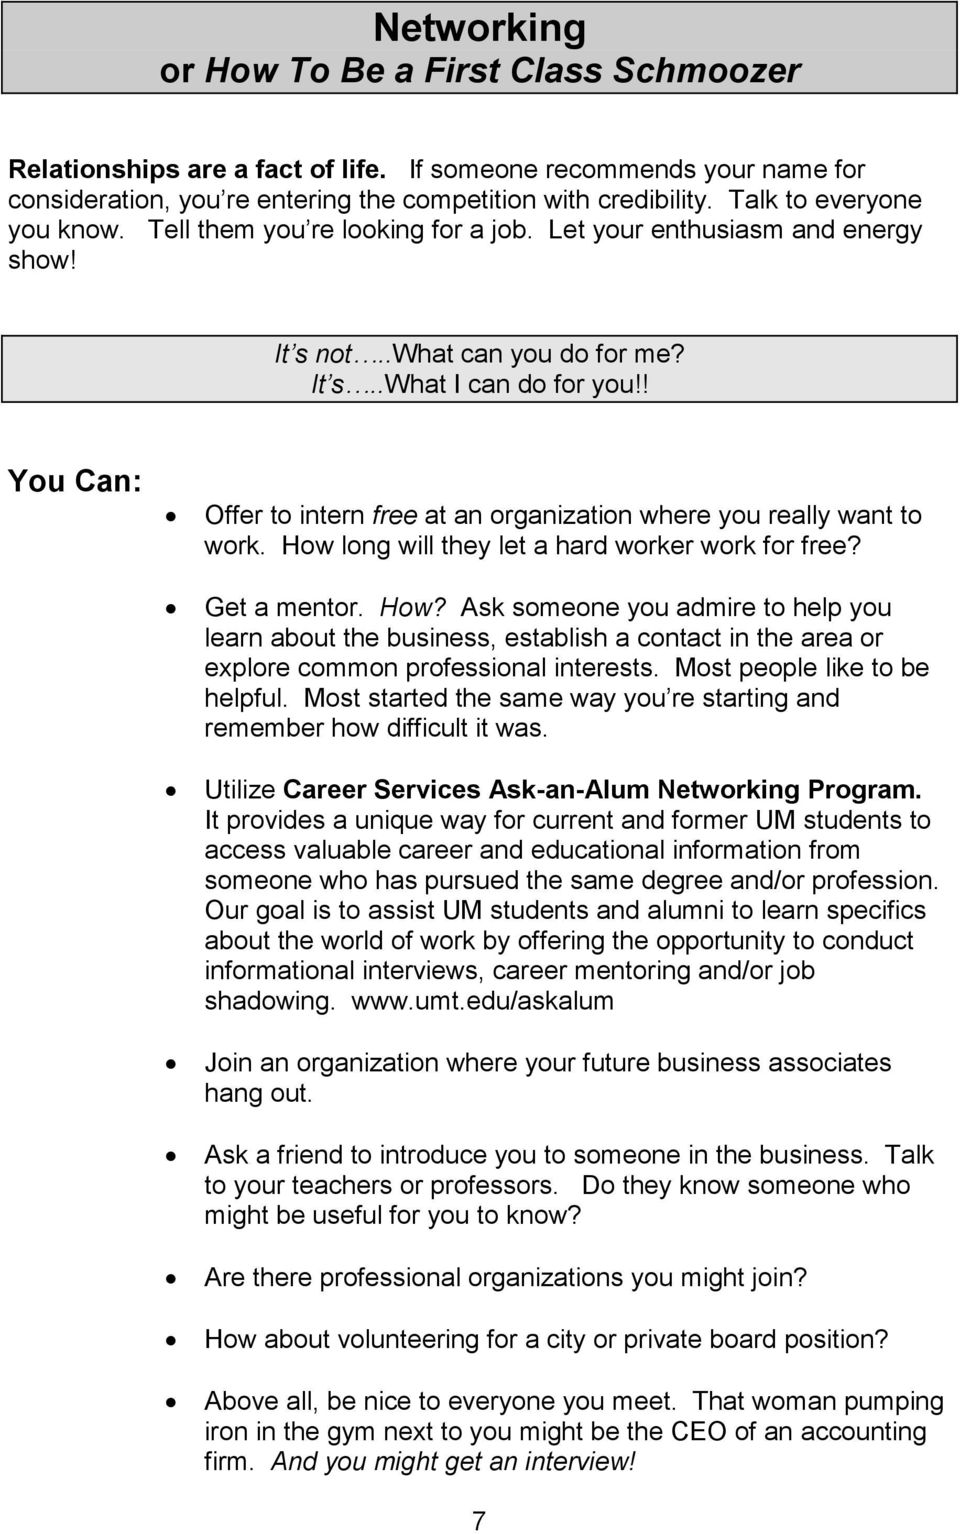 ! You Can: Offer to intern free at an organization where you really want to work. How